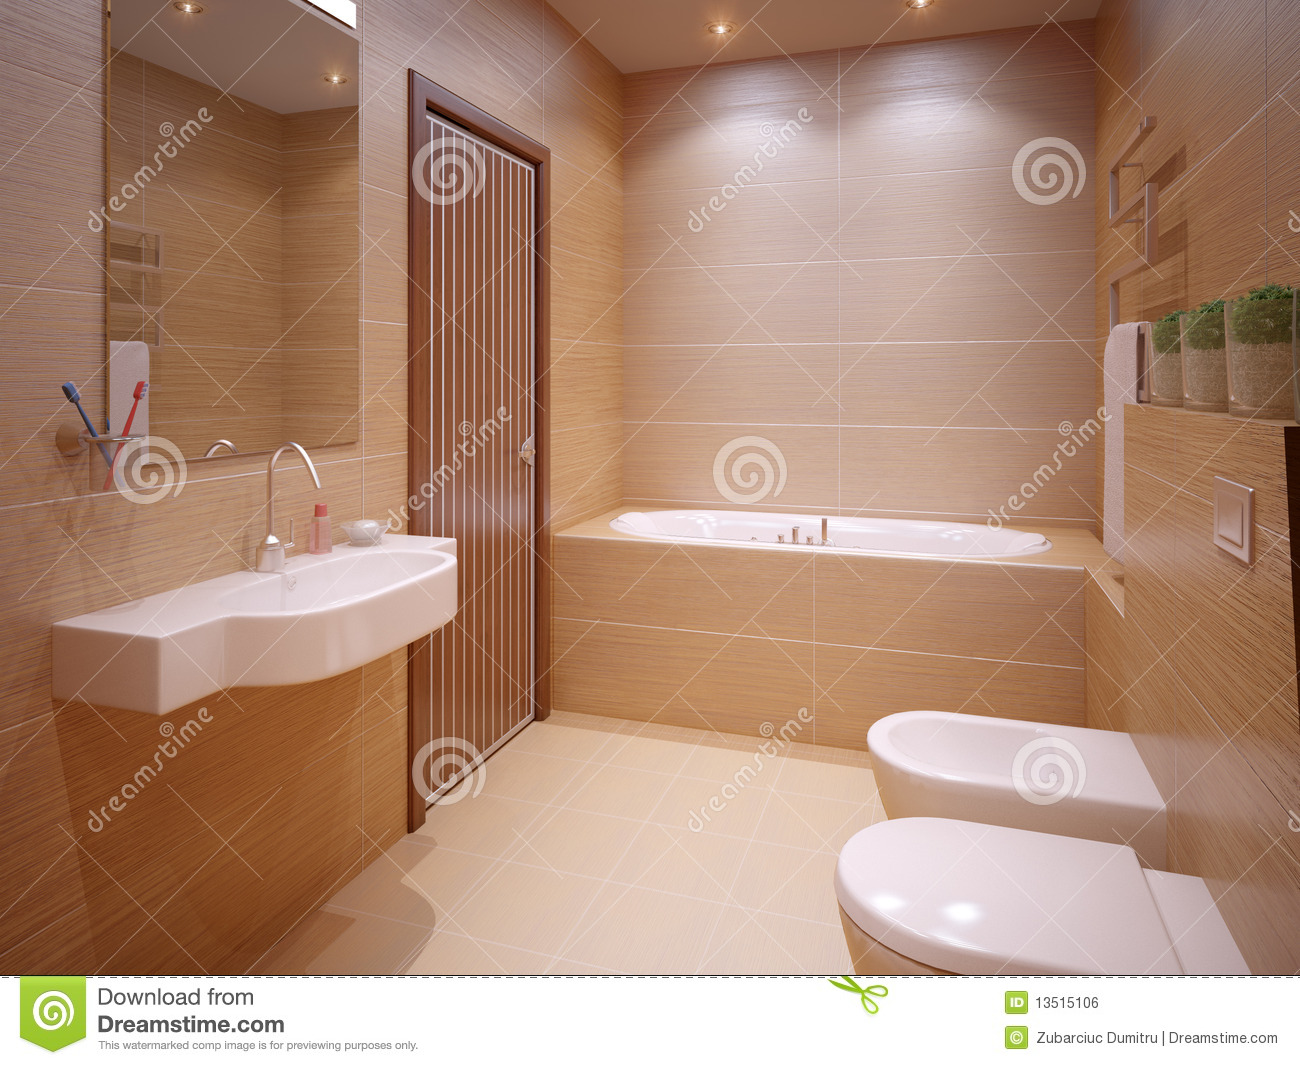 Nice bathroom royalty free stock image image 13515106 for Pics of nice bathrooms